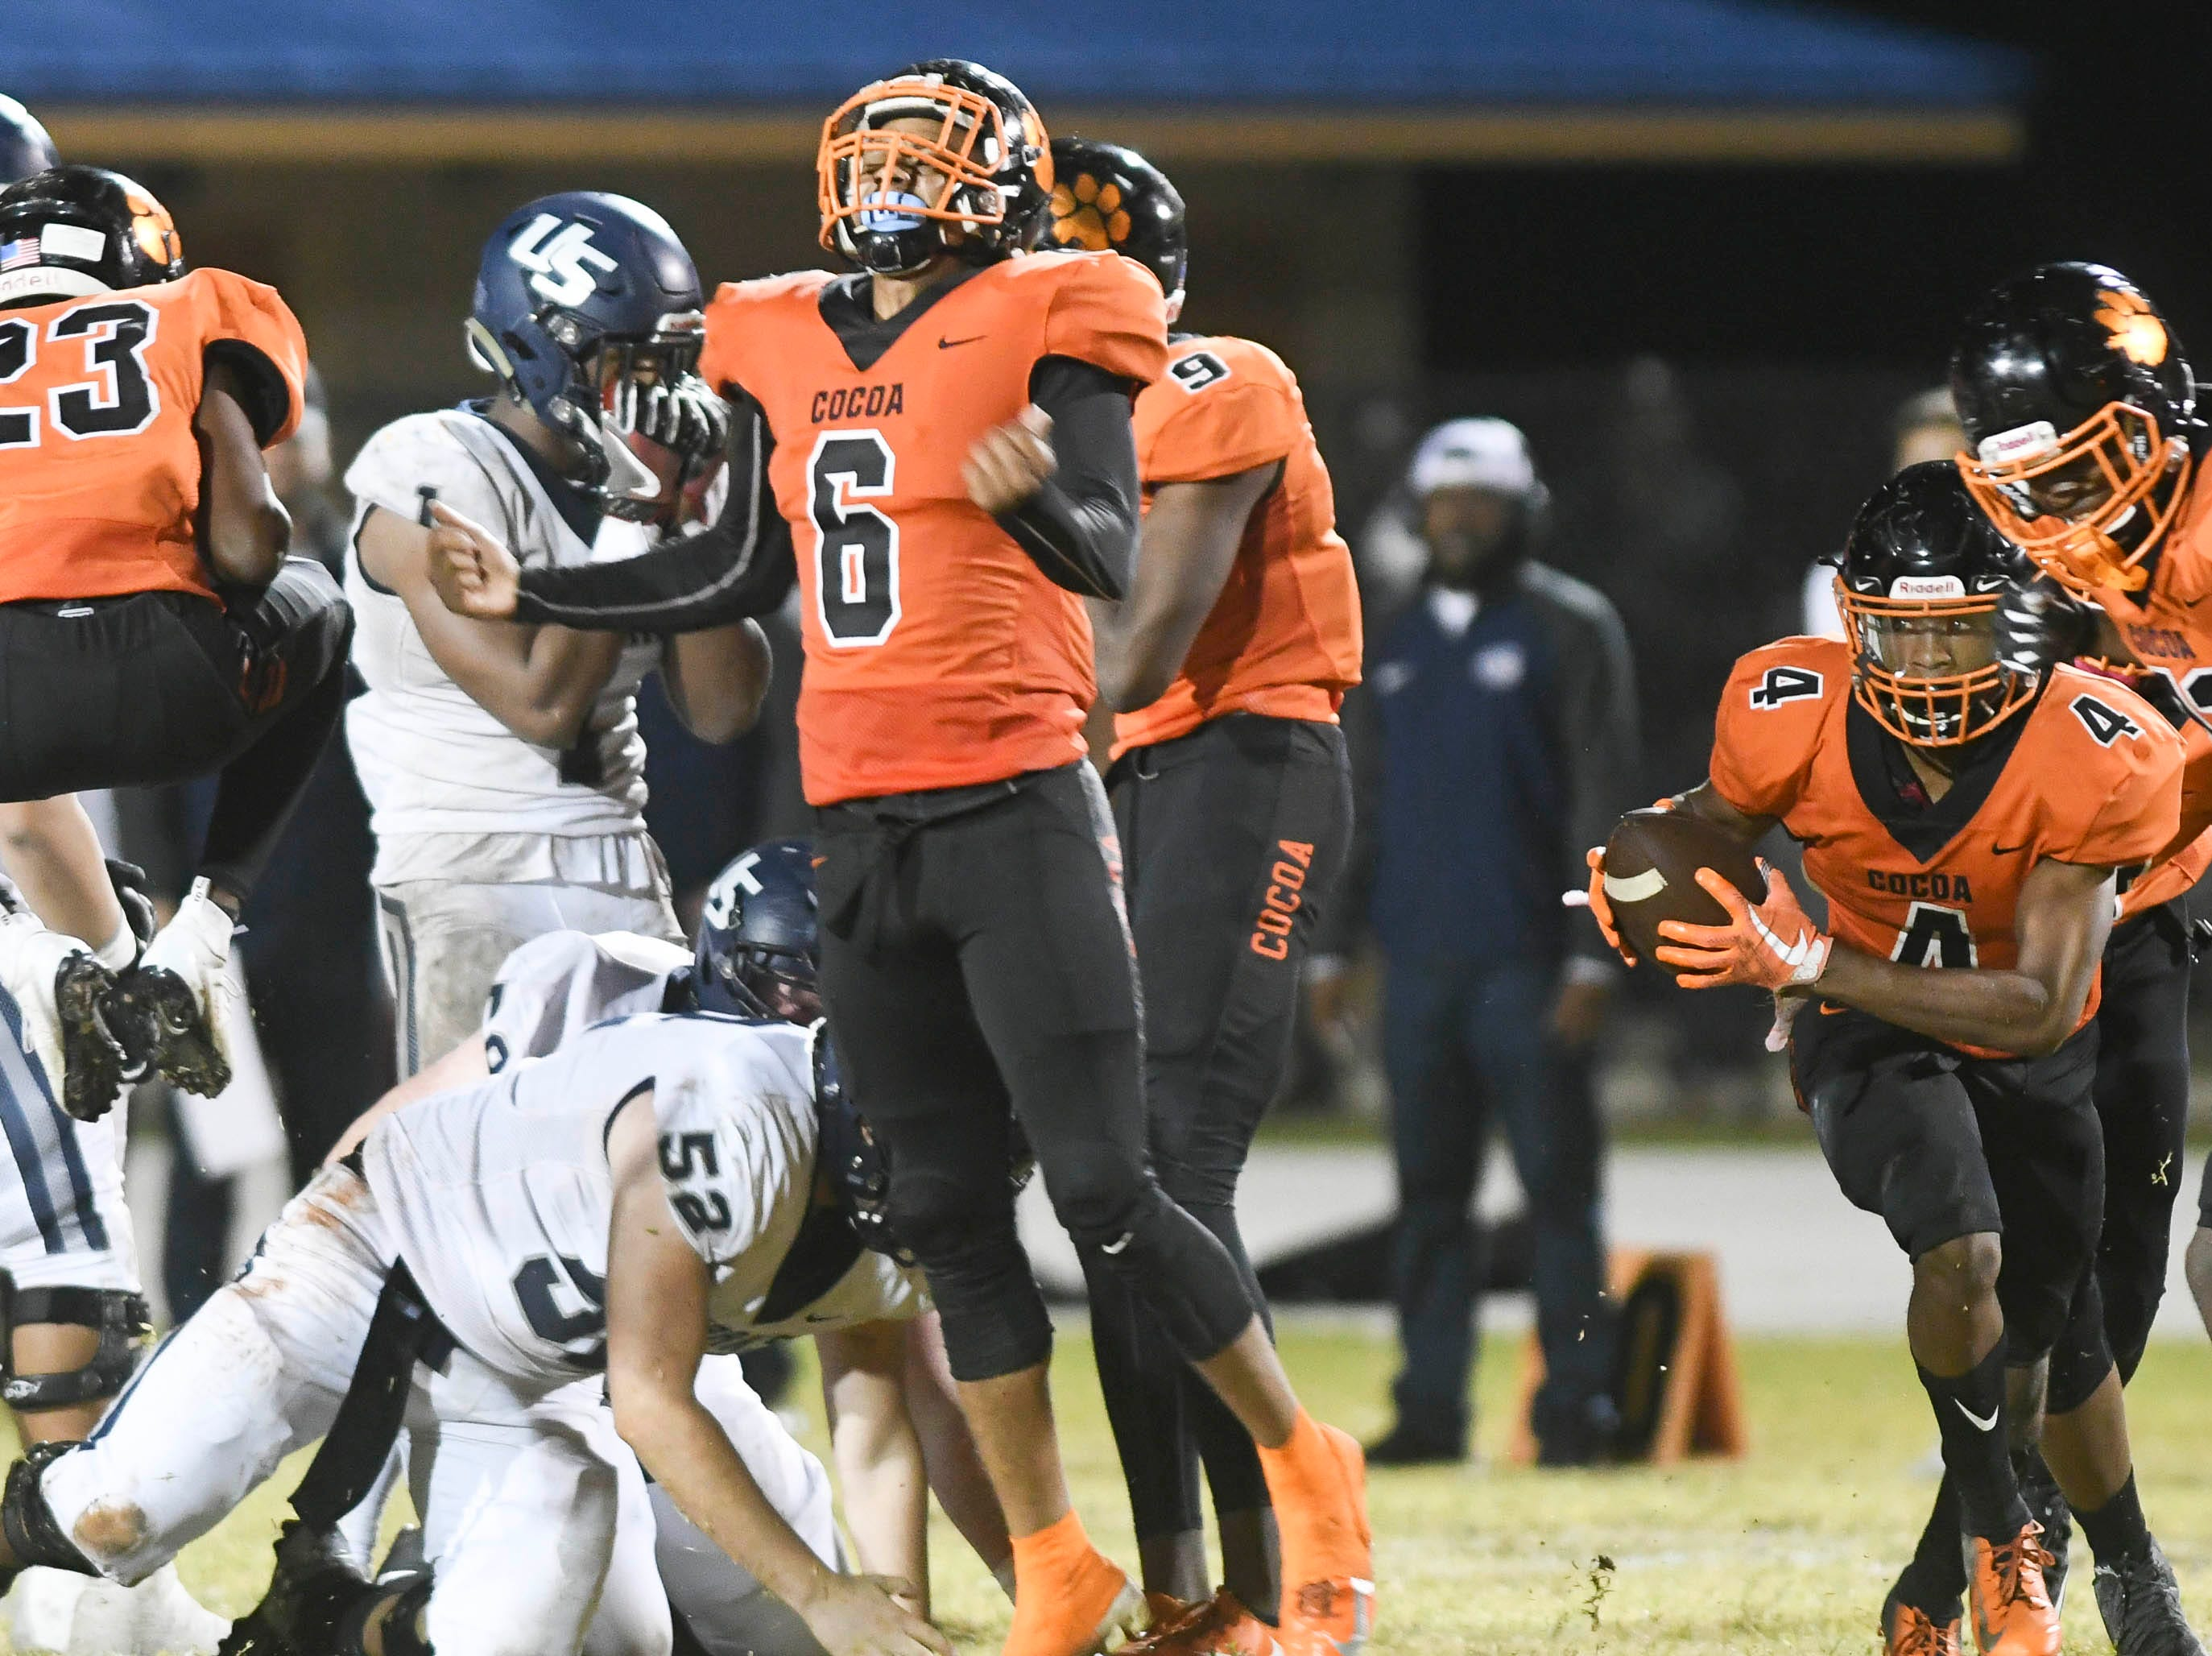 Cocoa's WIllie Gaines (4) recovers a fumble by Kenny Mcintosh of University (1) preserving the Tigers 32-31 victory in Friday's Class 4A state semifinal.